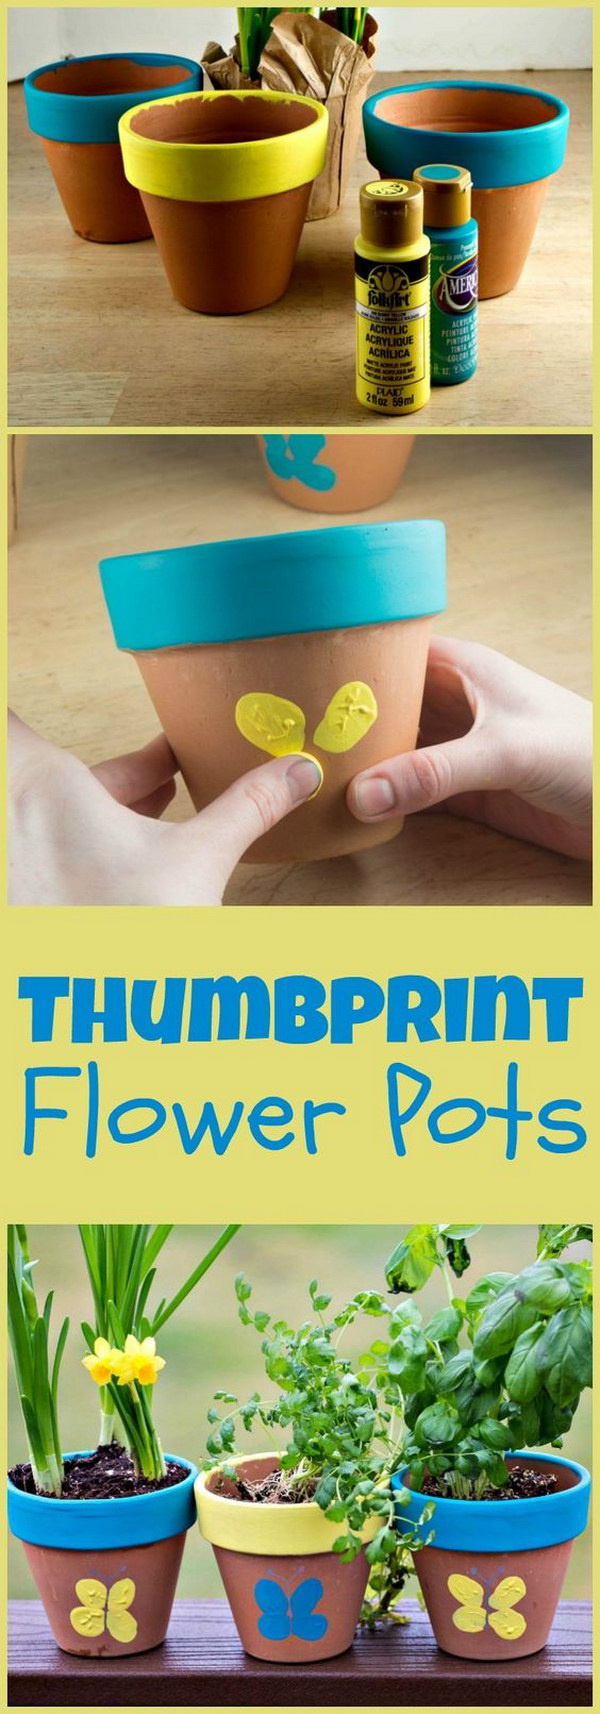 Thumbprint Flower Pots For Mom